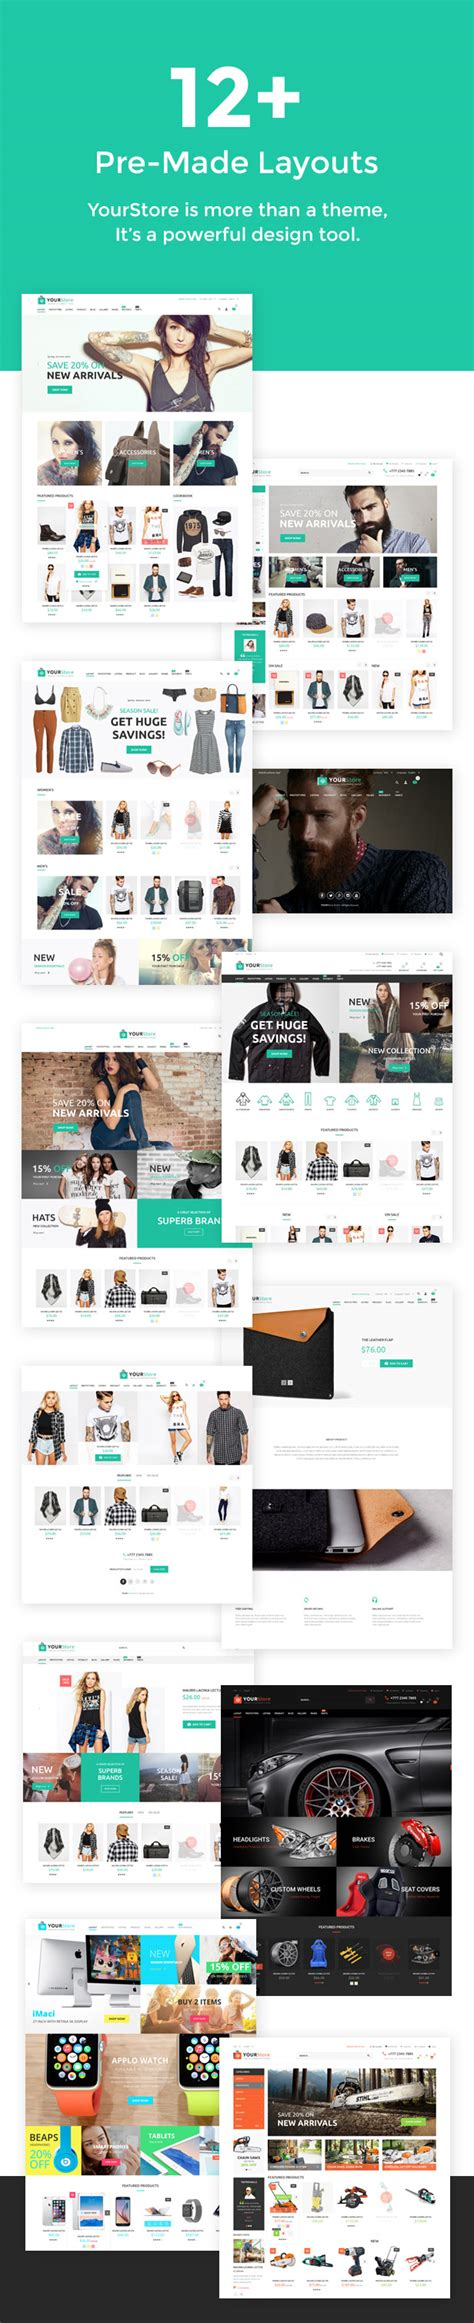 woocommerce themes clothing giveaway win 3 copies of yourstore woocommerce theme